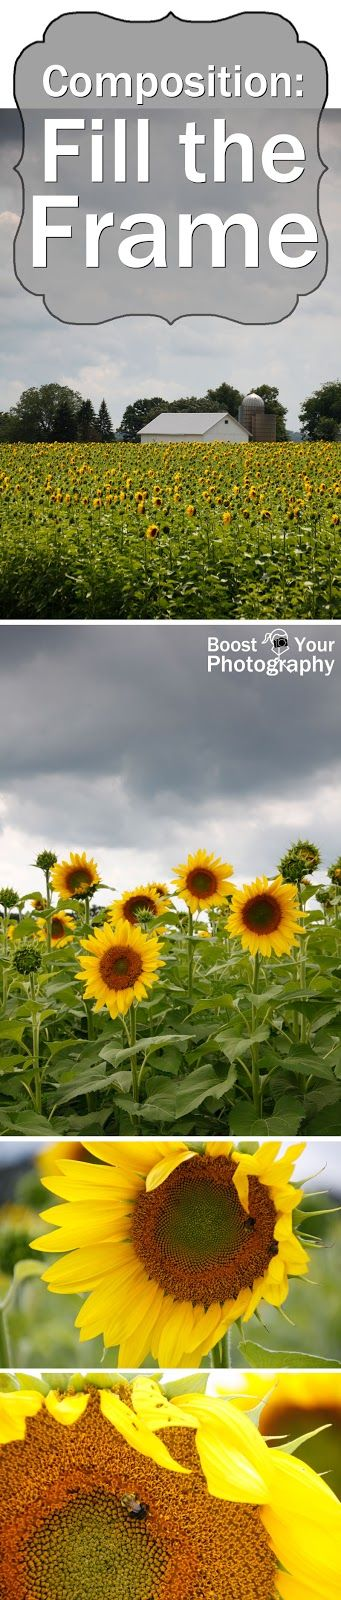 Composition: Fill the Frame - sunflowers example   Boost Your Photography